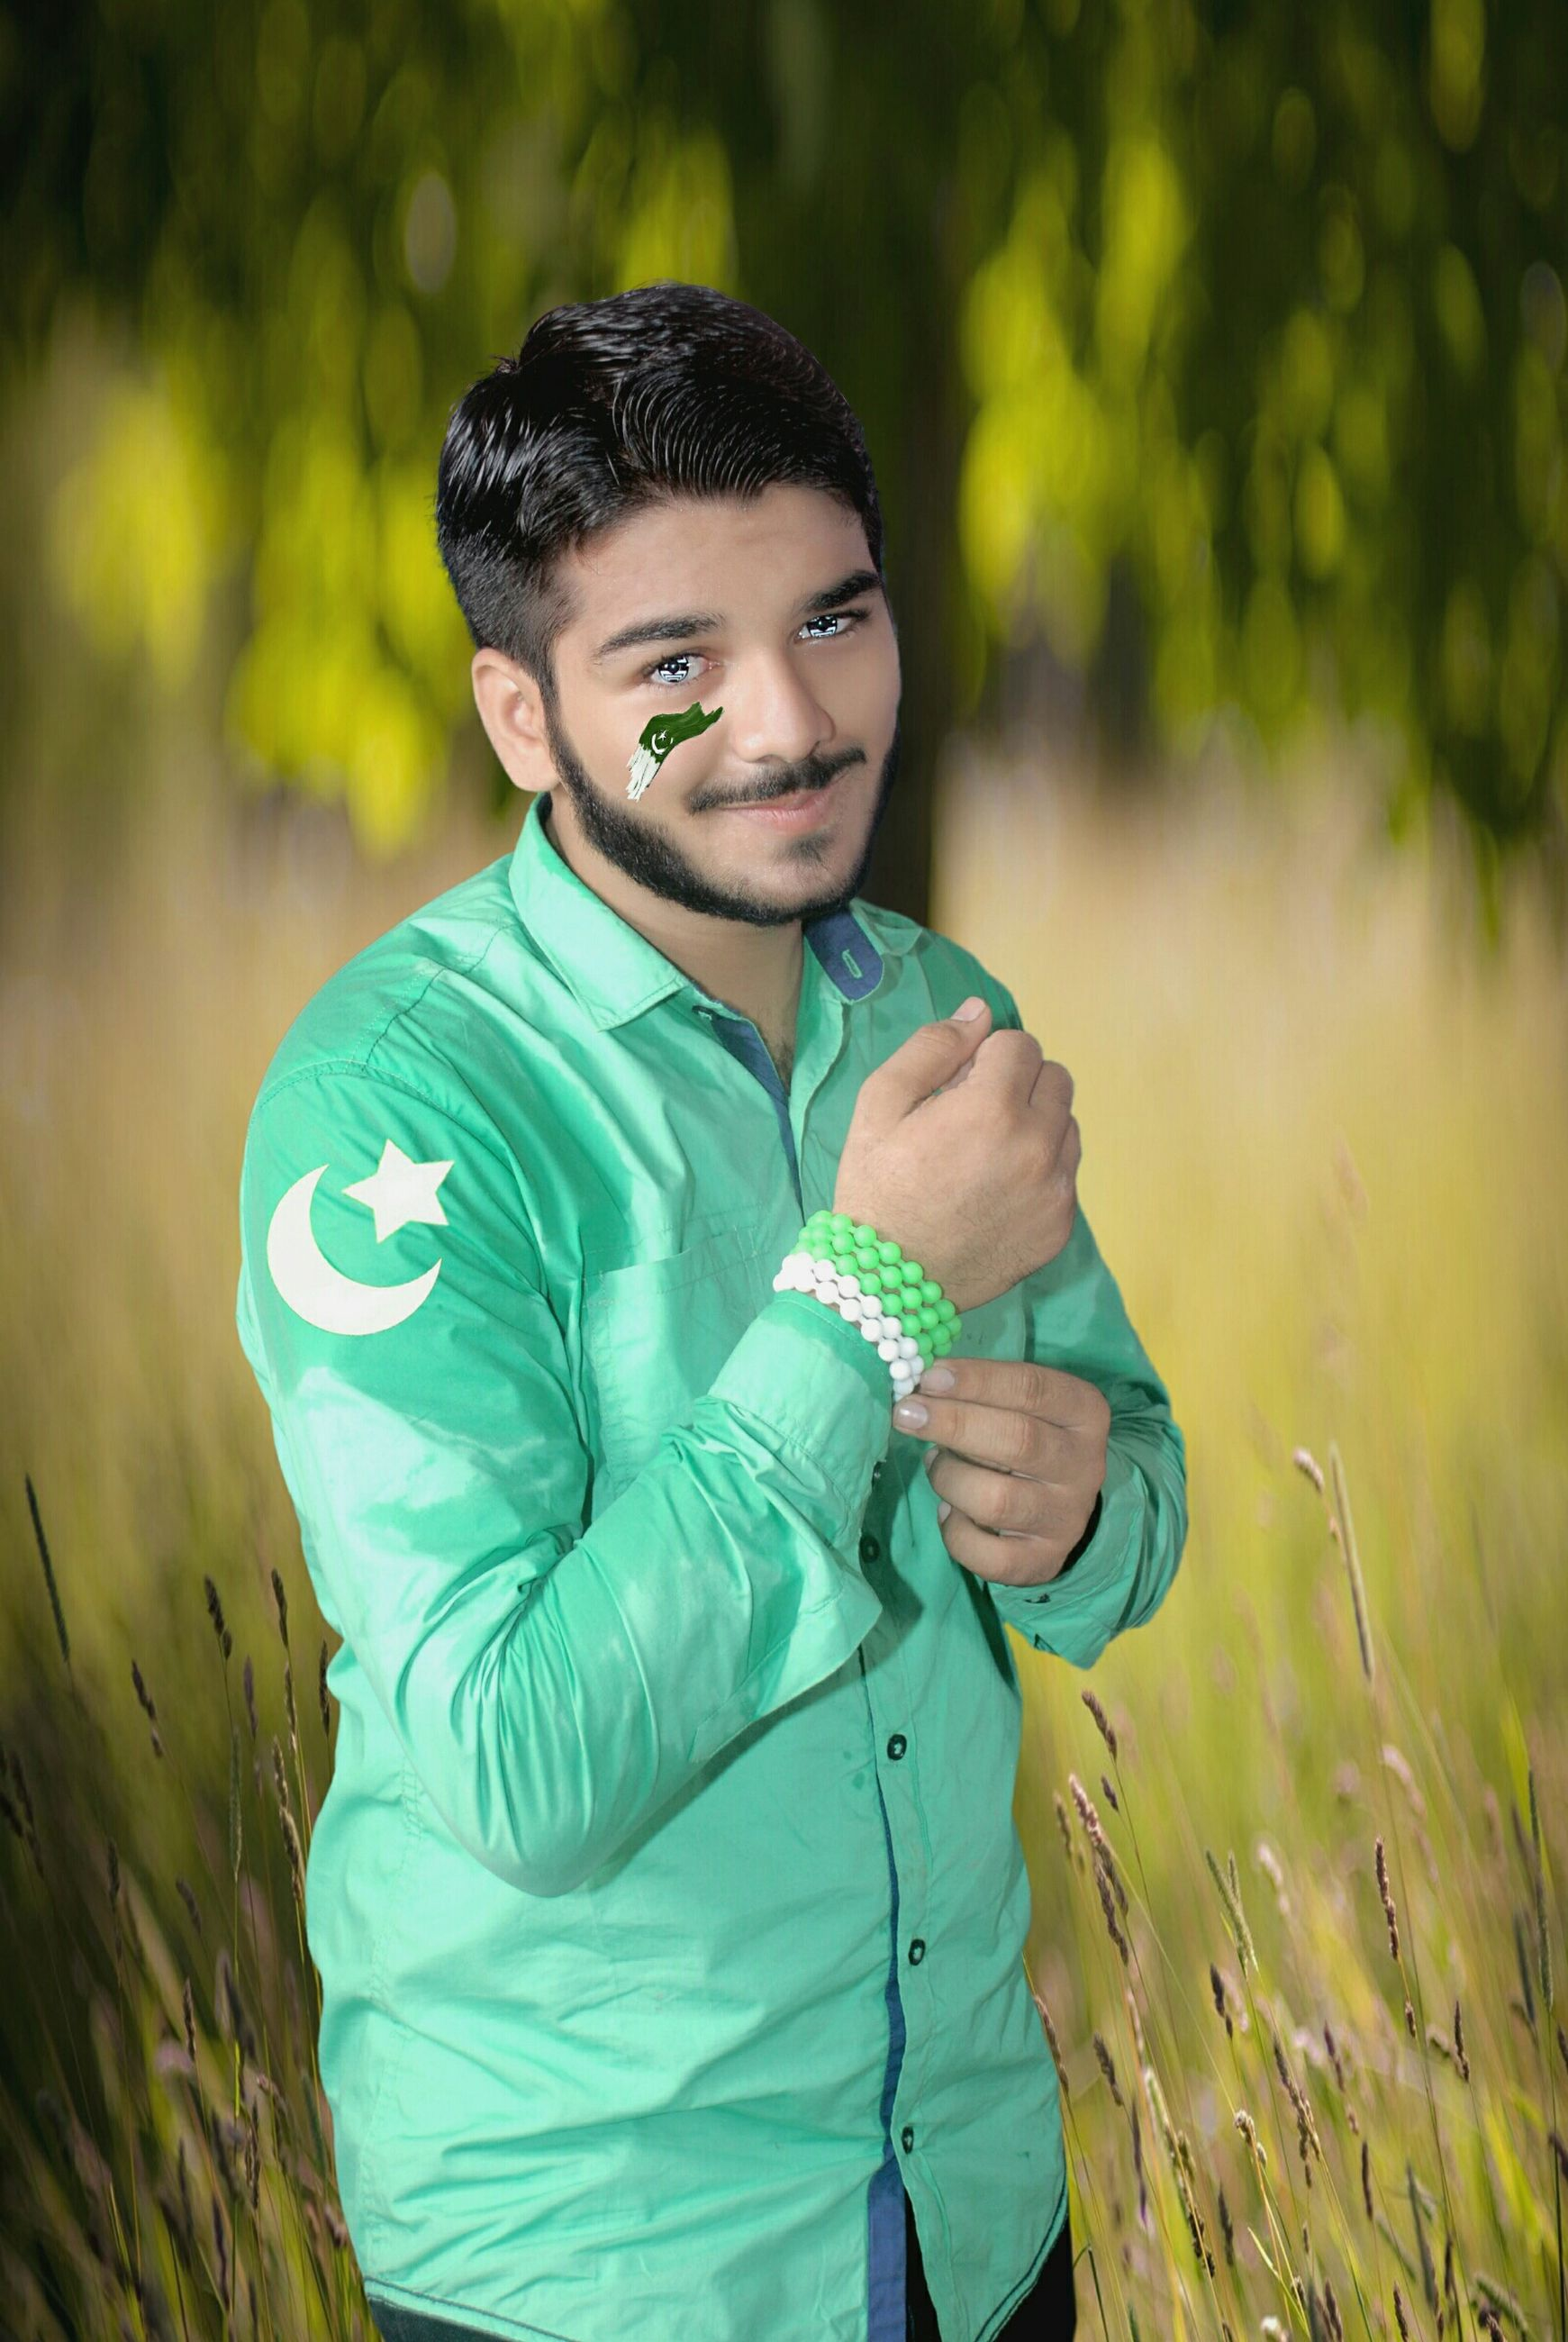 lifestyles, leisure activity, person, casual clothing, portrait, looking at camera, young adult, young men, front view, smiling, happiness, waist up, standing, focus on foreground, three quarter length, boys, field